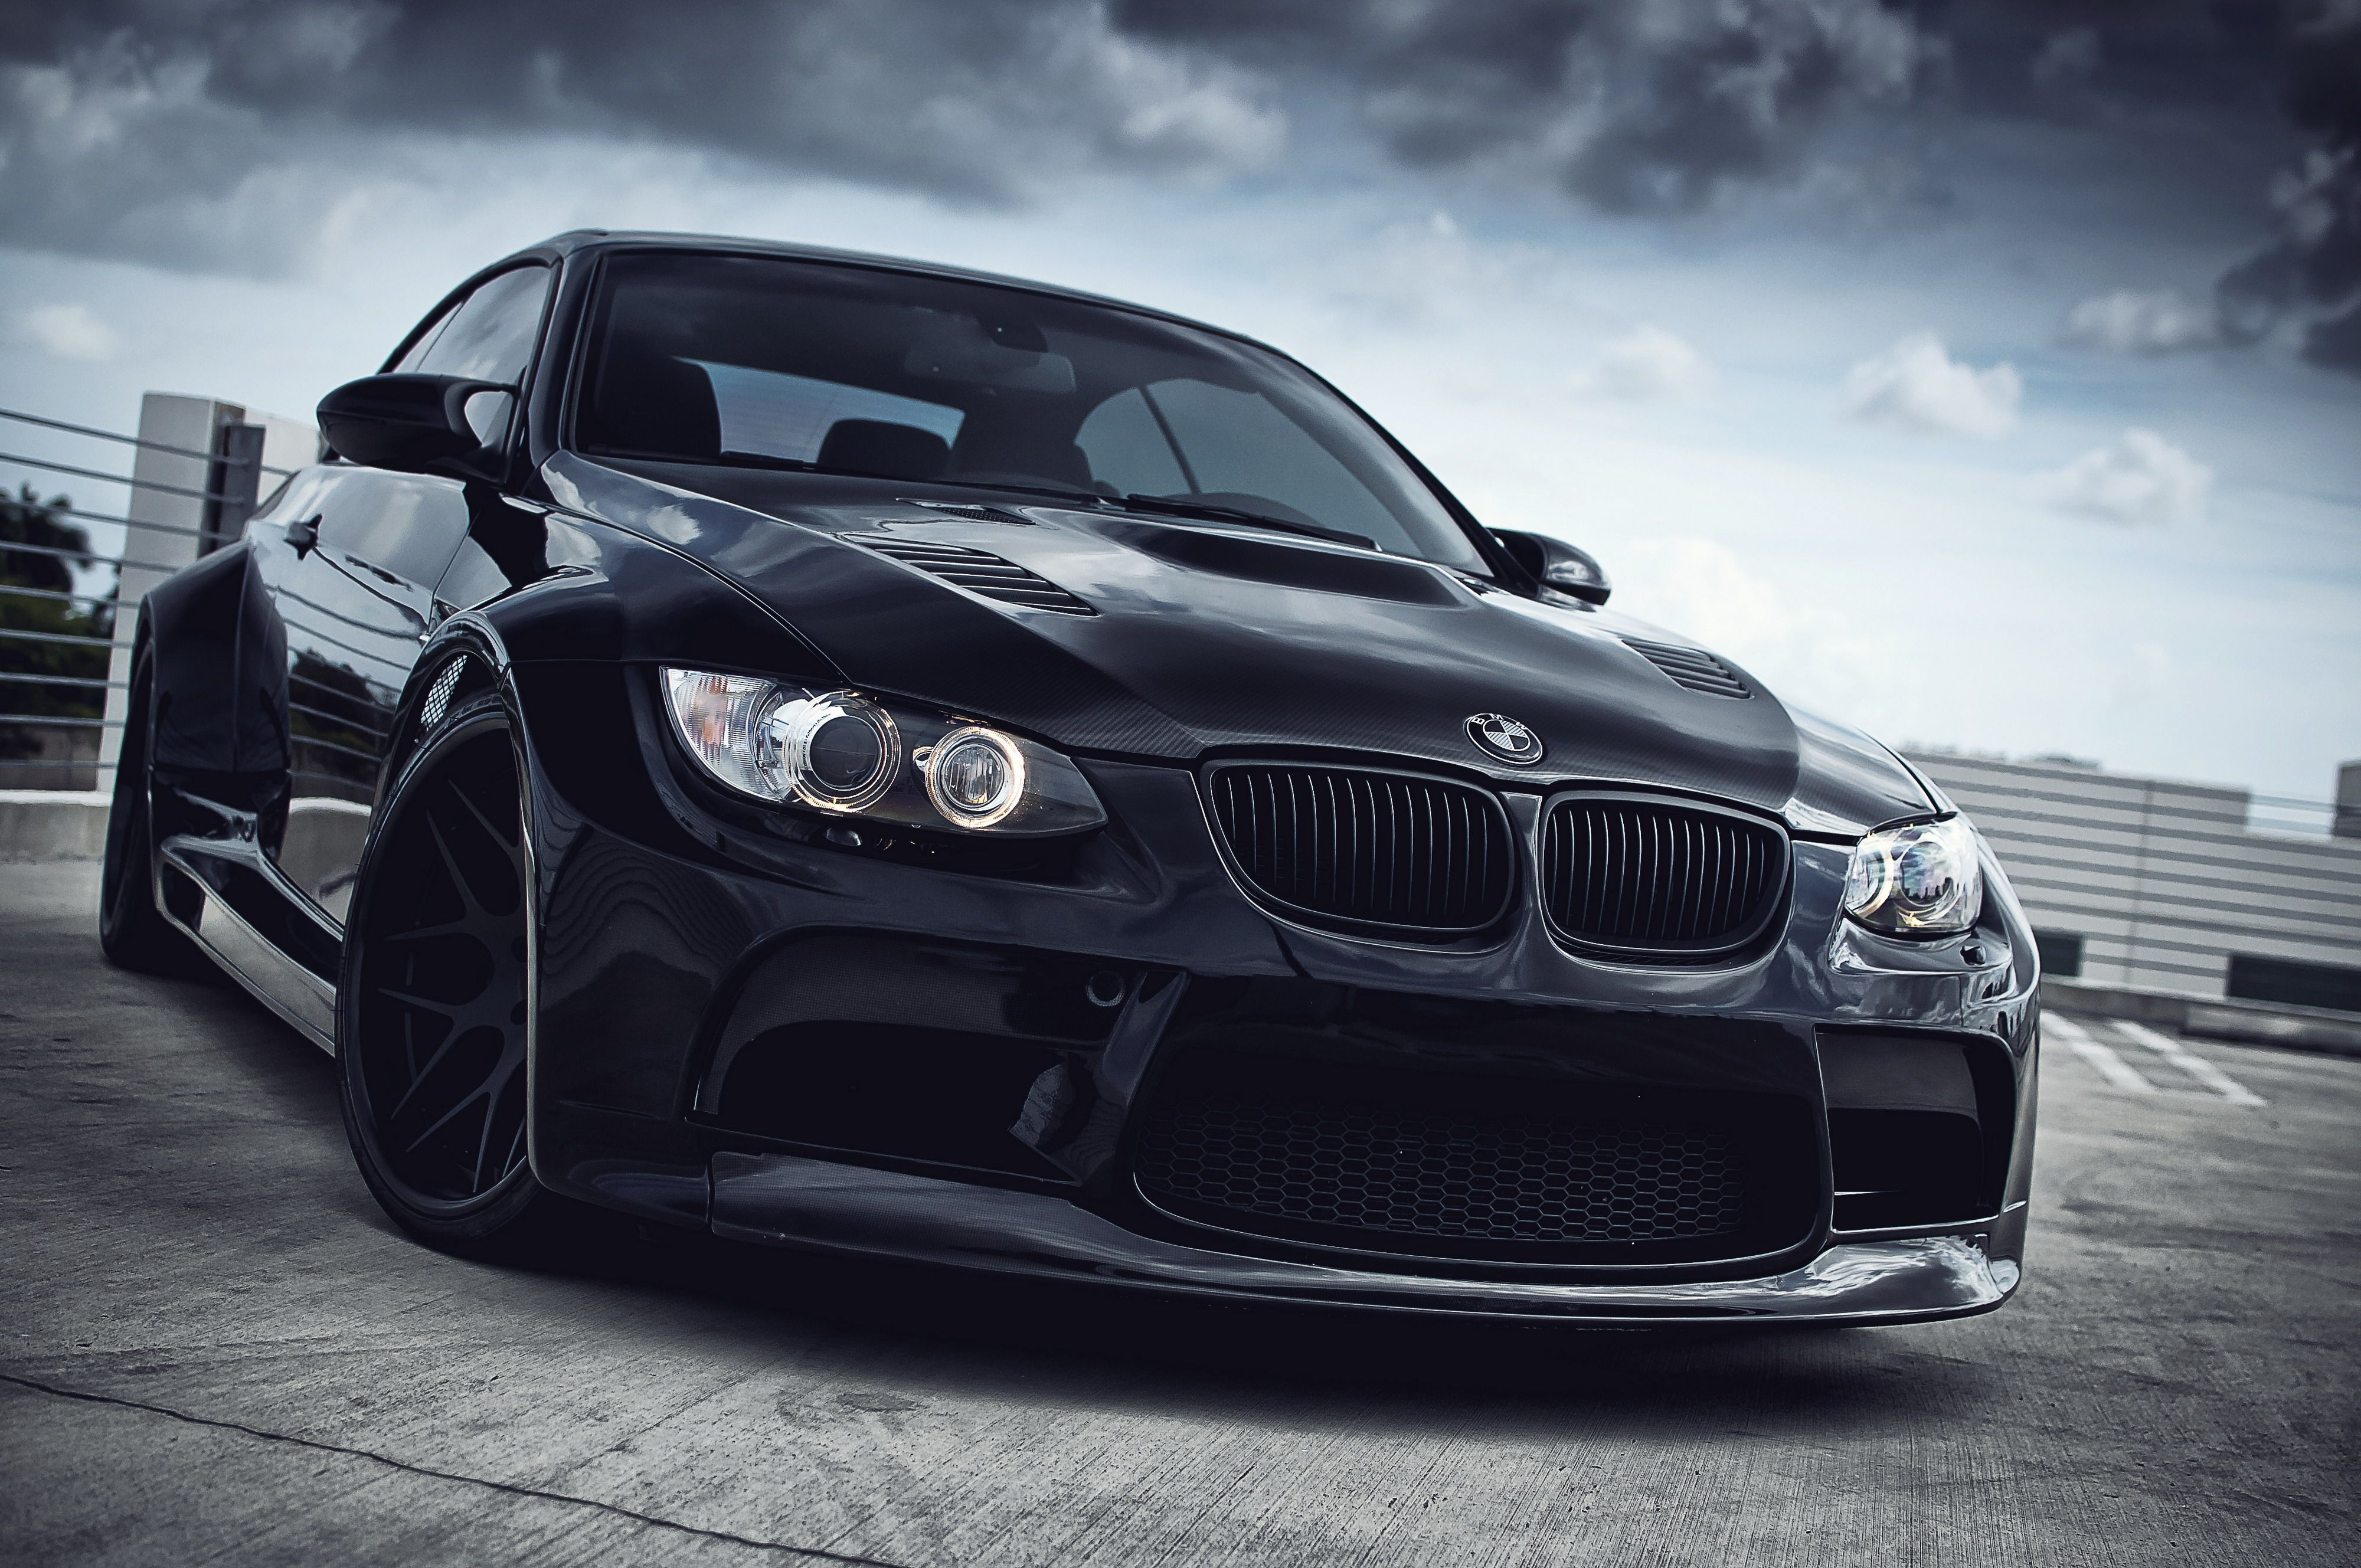 4k Bmw Wallpapers Top Free 4k Bmw Backgrounds Wallpaperaccess